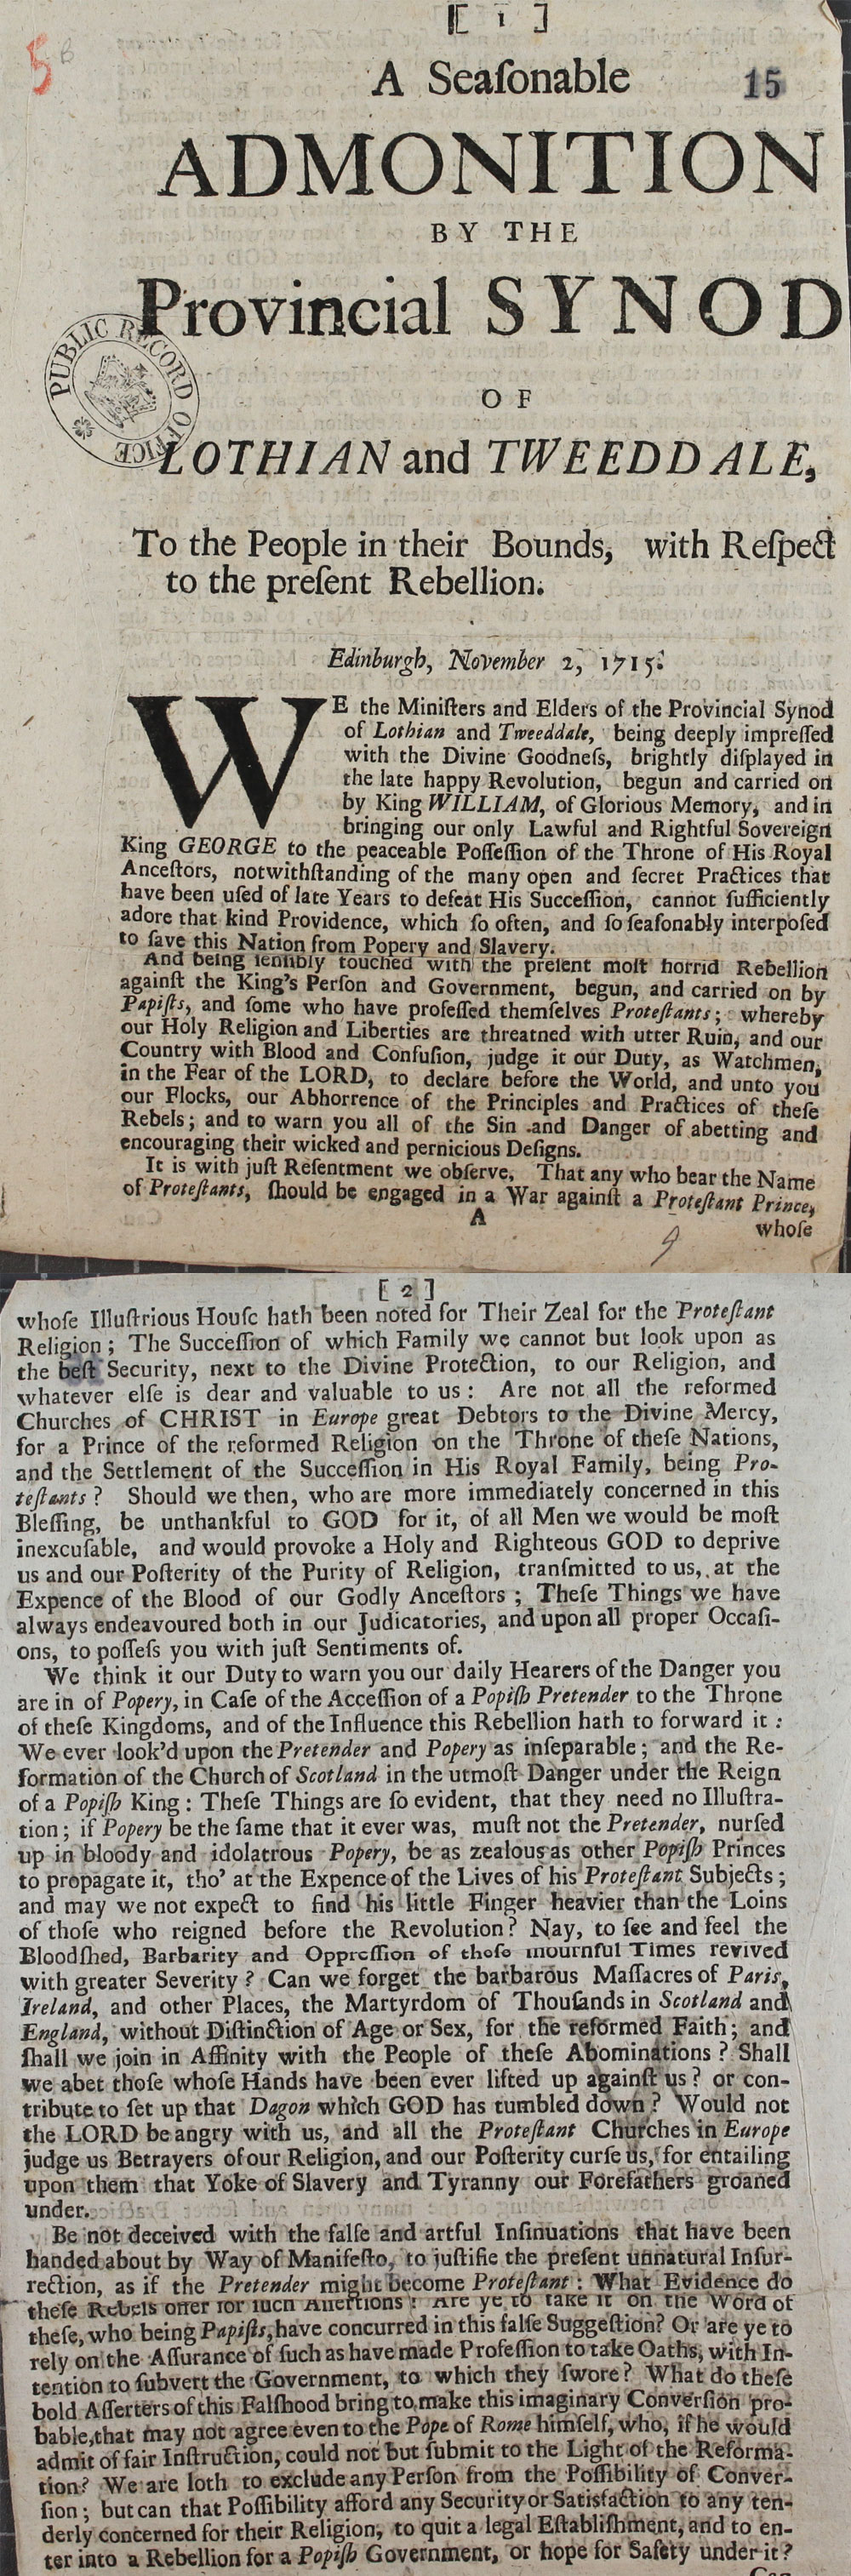 Extracts from a Scottish Church pamphlet addressed to the people of Lothian and Tweeddale, 2 November, 1715 (SP 54/10/5B)